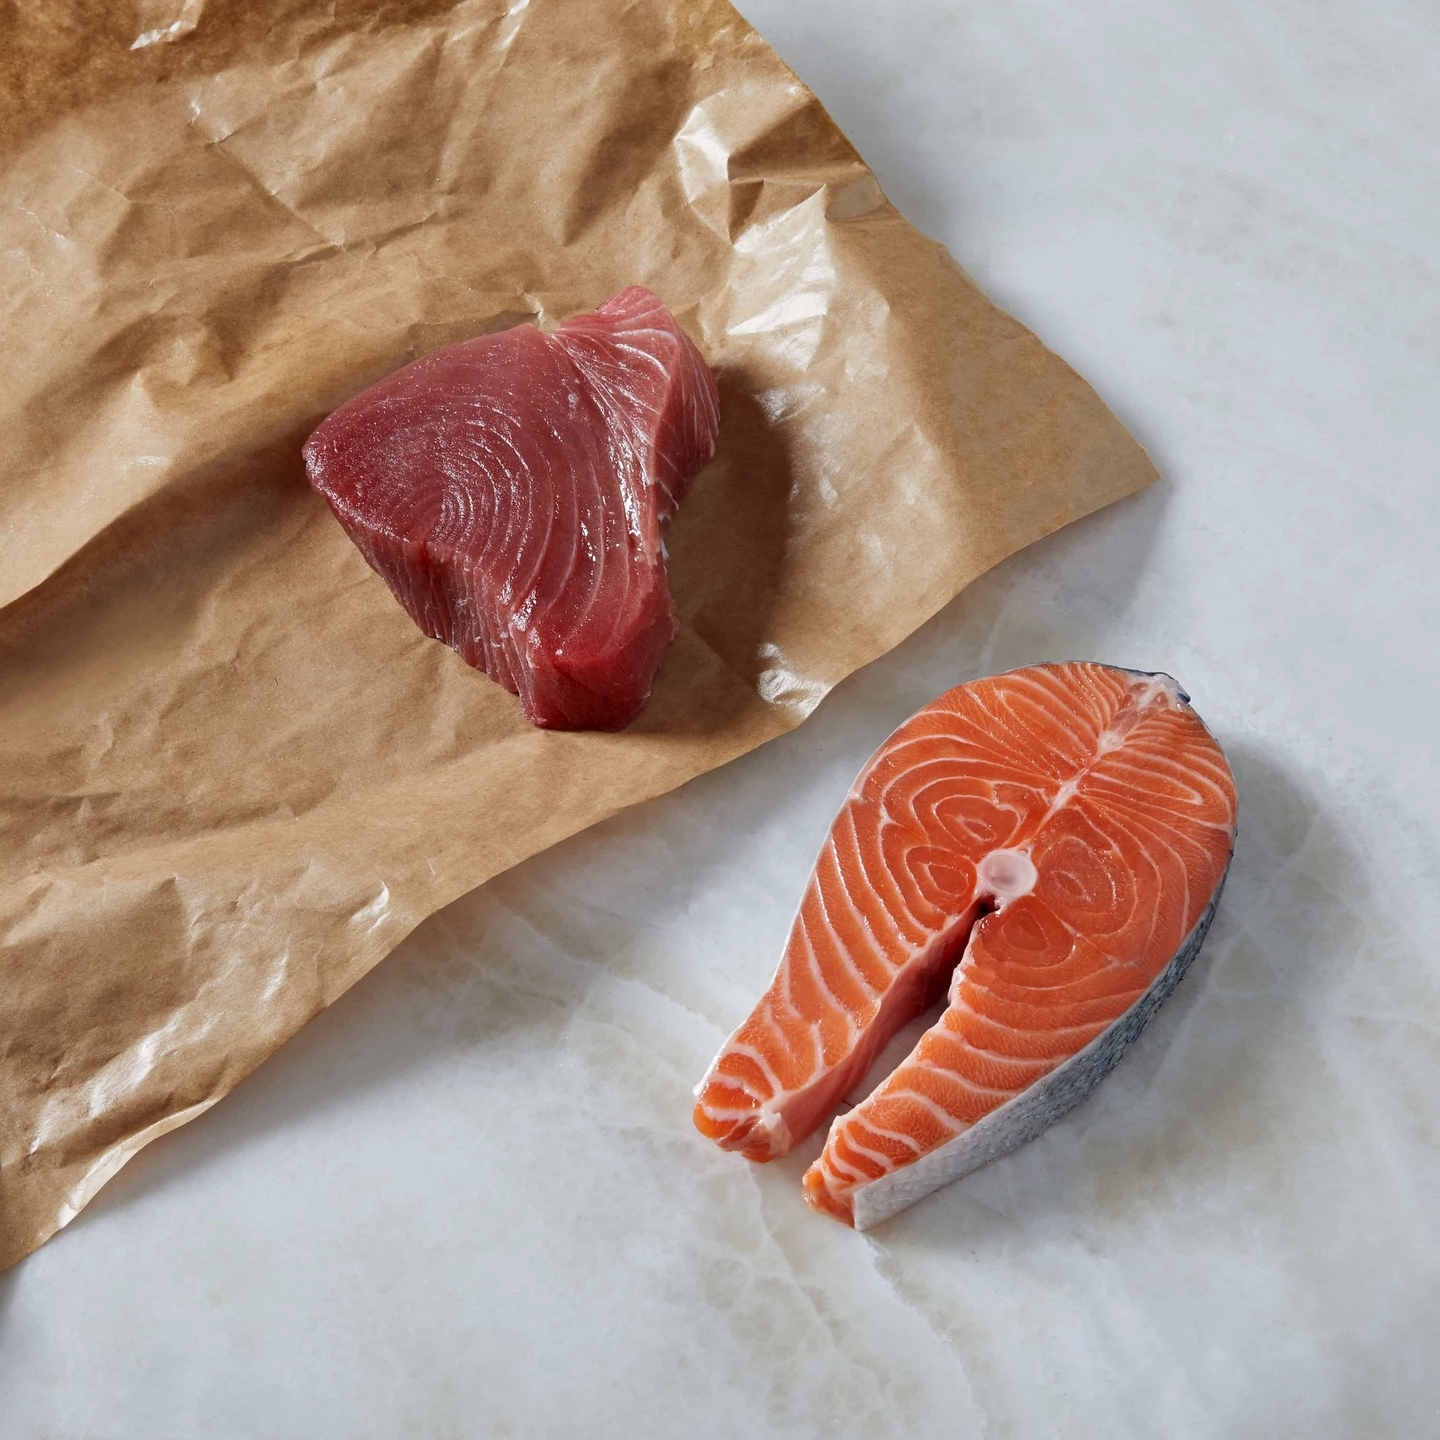 A raw piece of tuna and salmon on top of butcher paper